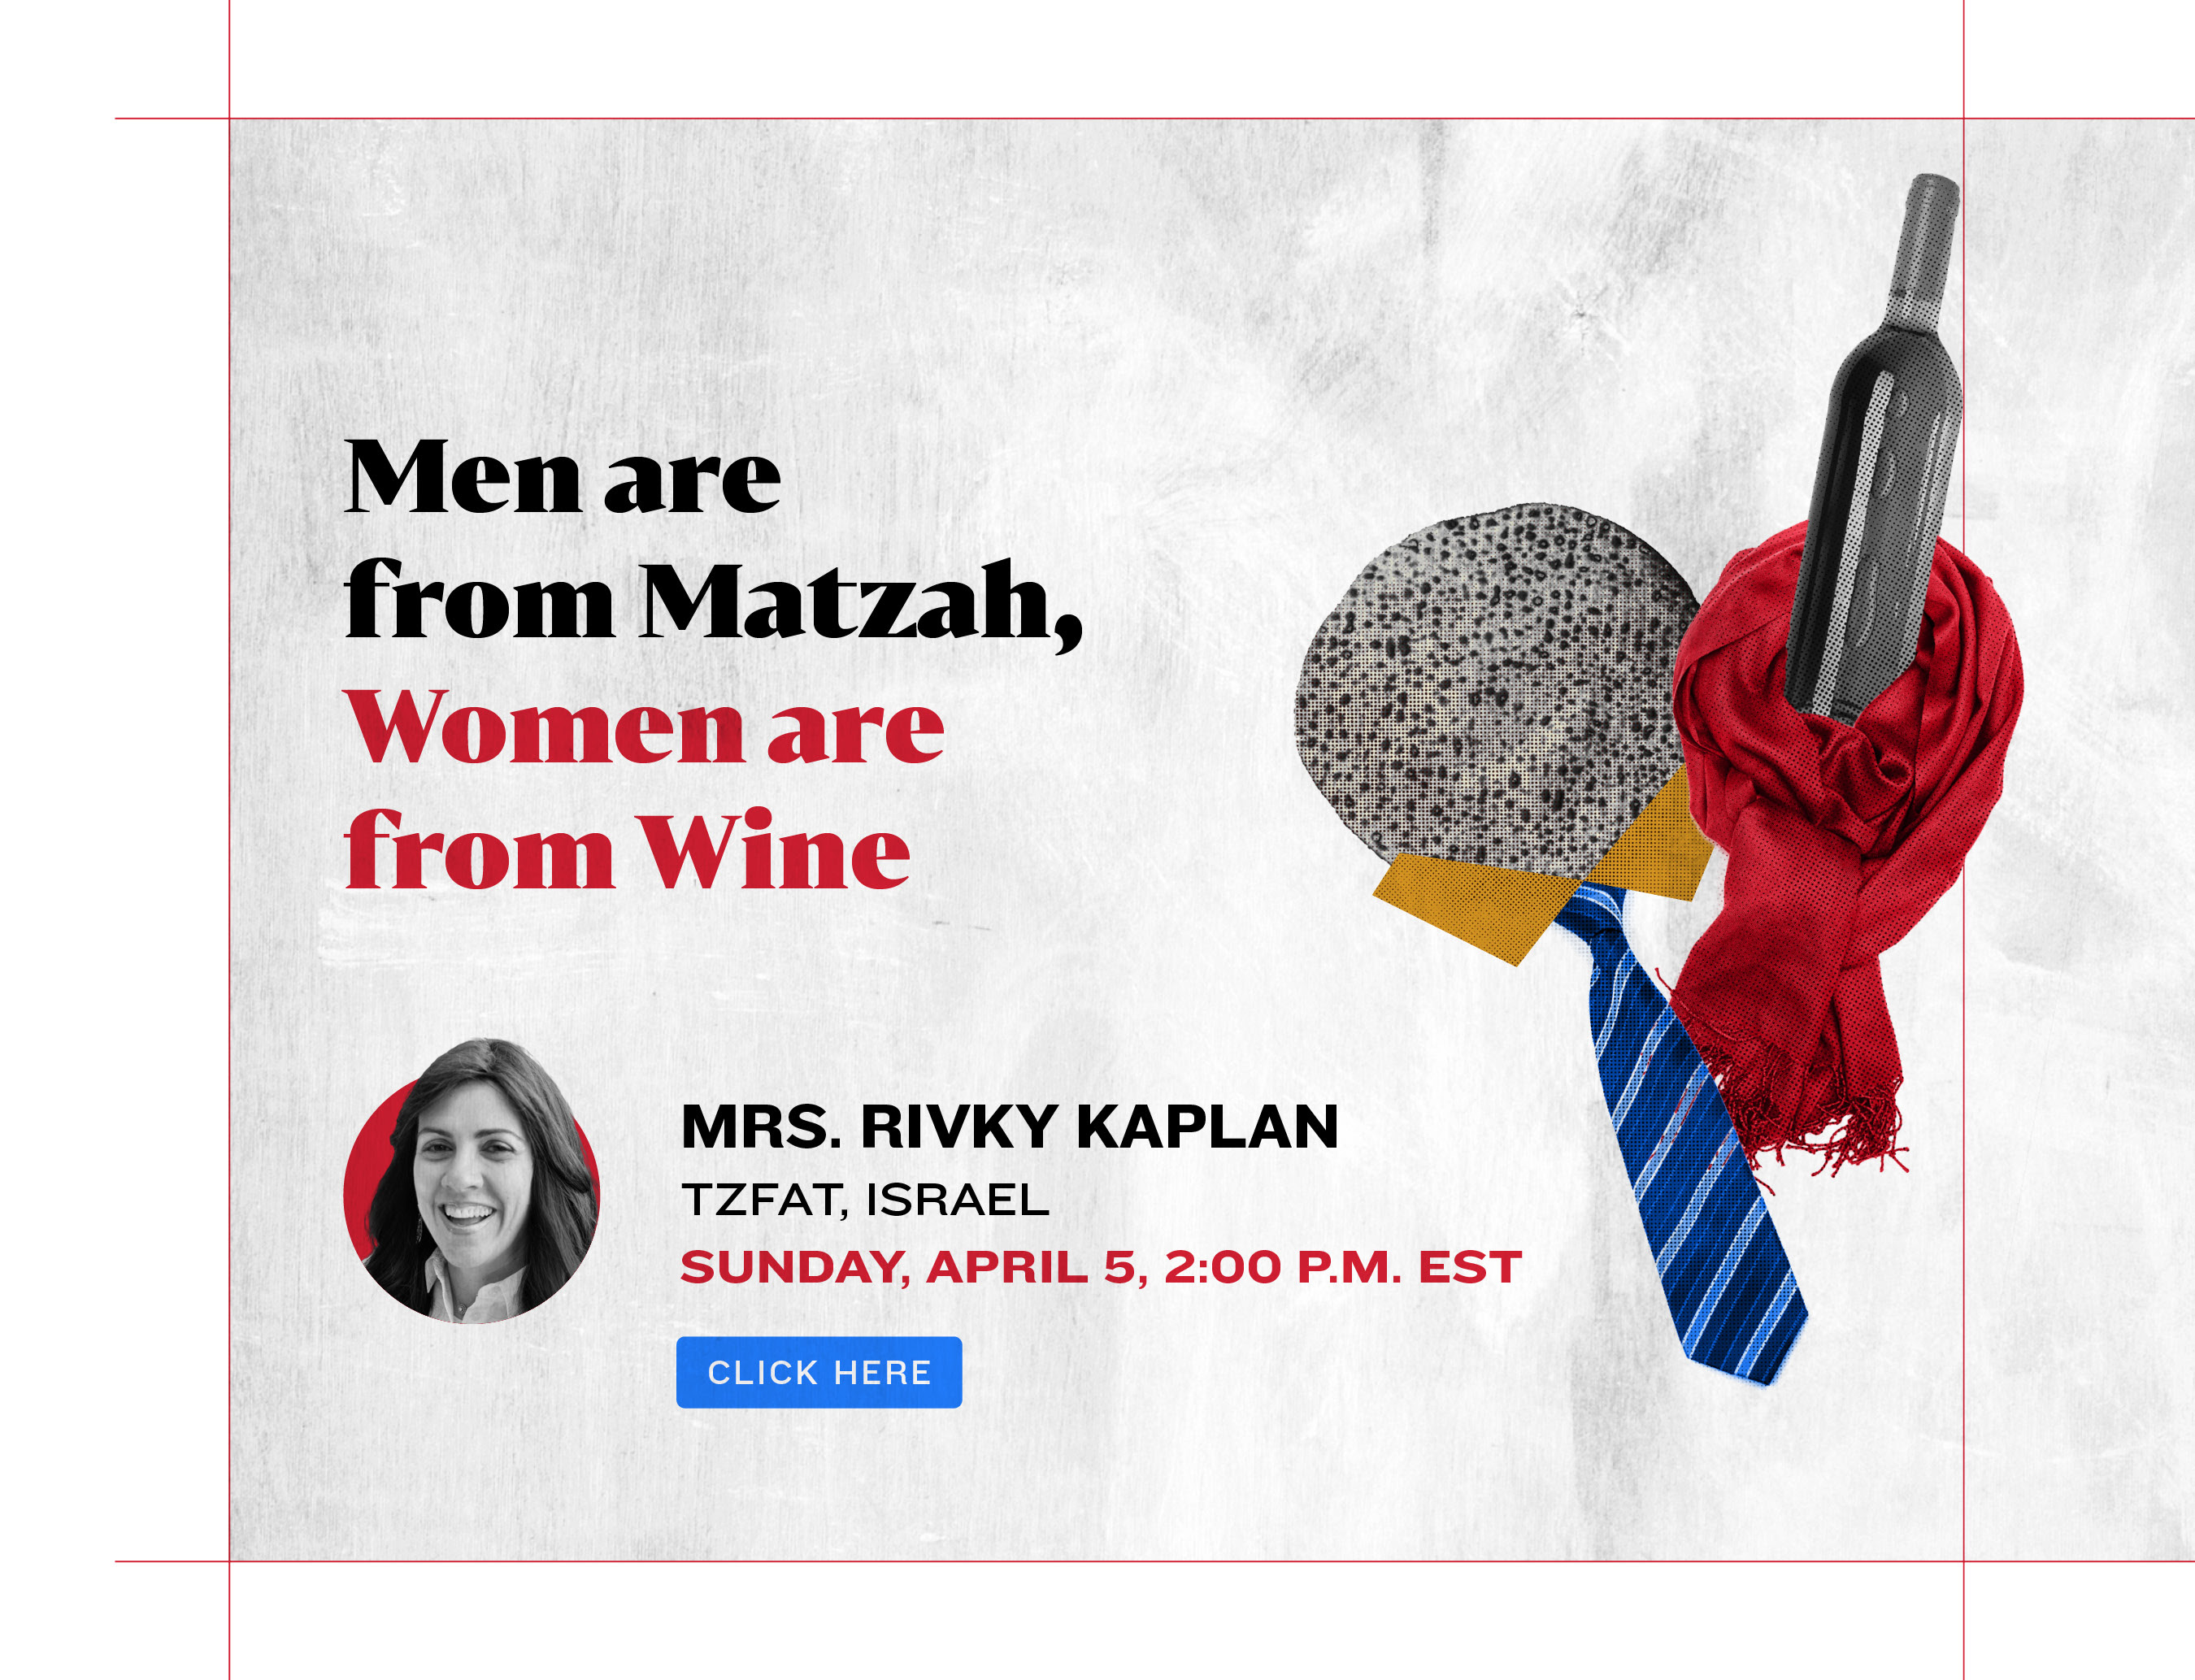 Men are from Matzah, Women are from Wine